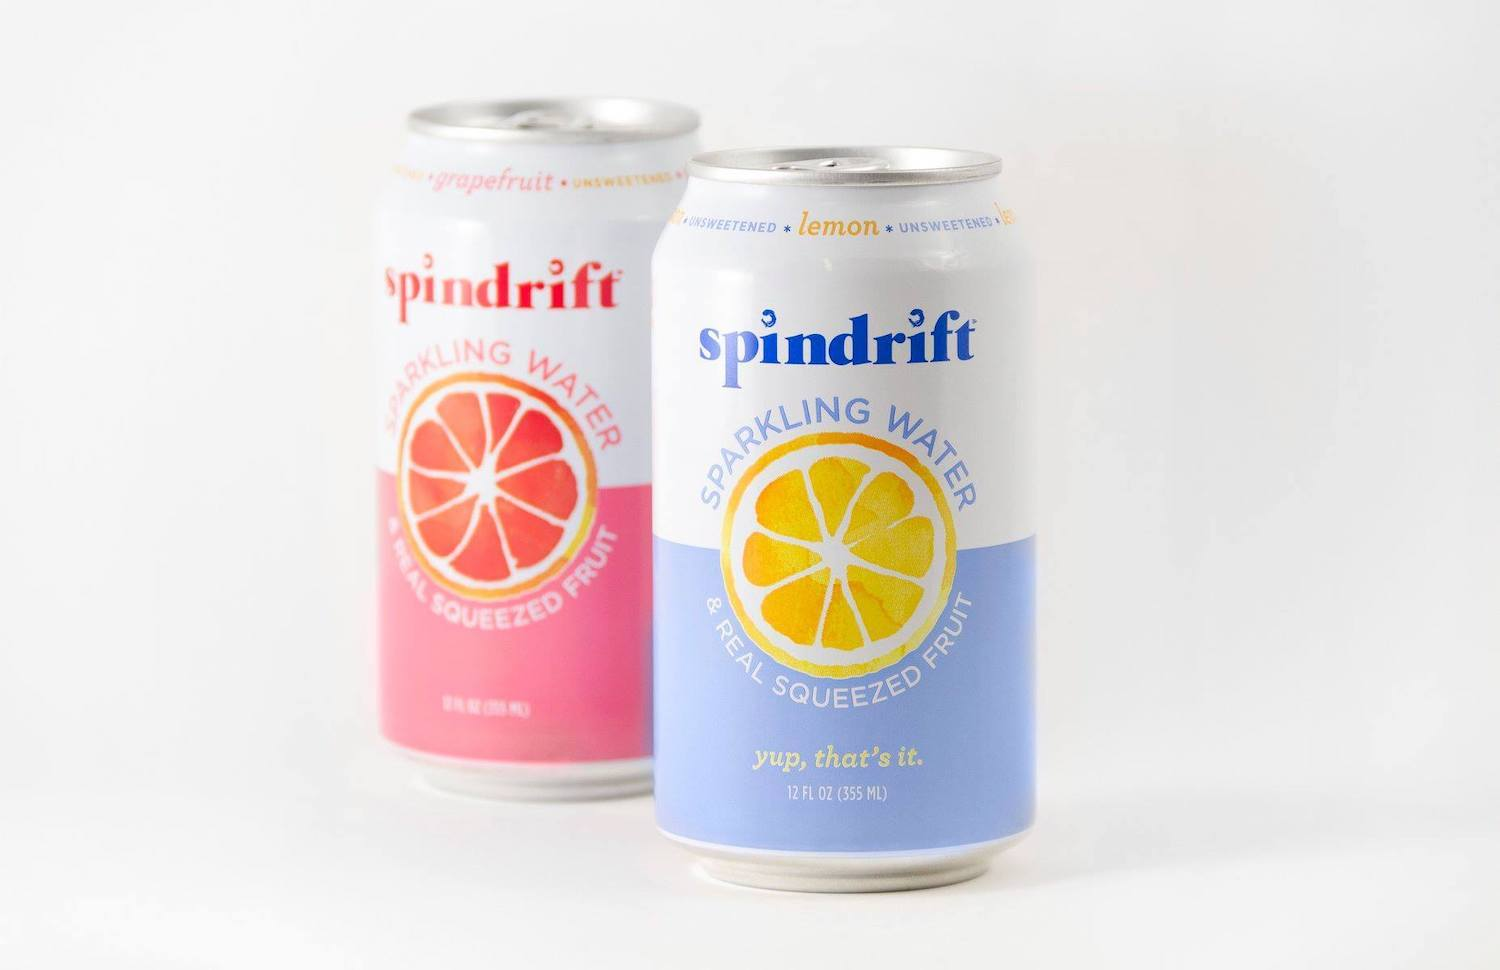 Spindrift Sparkling Water product shot. October 2020